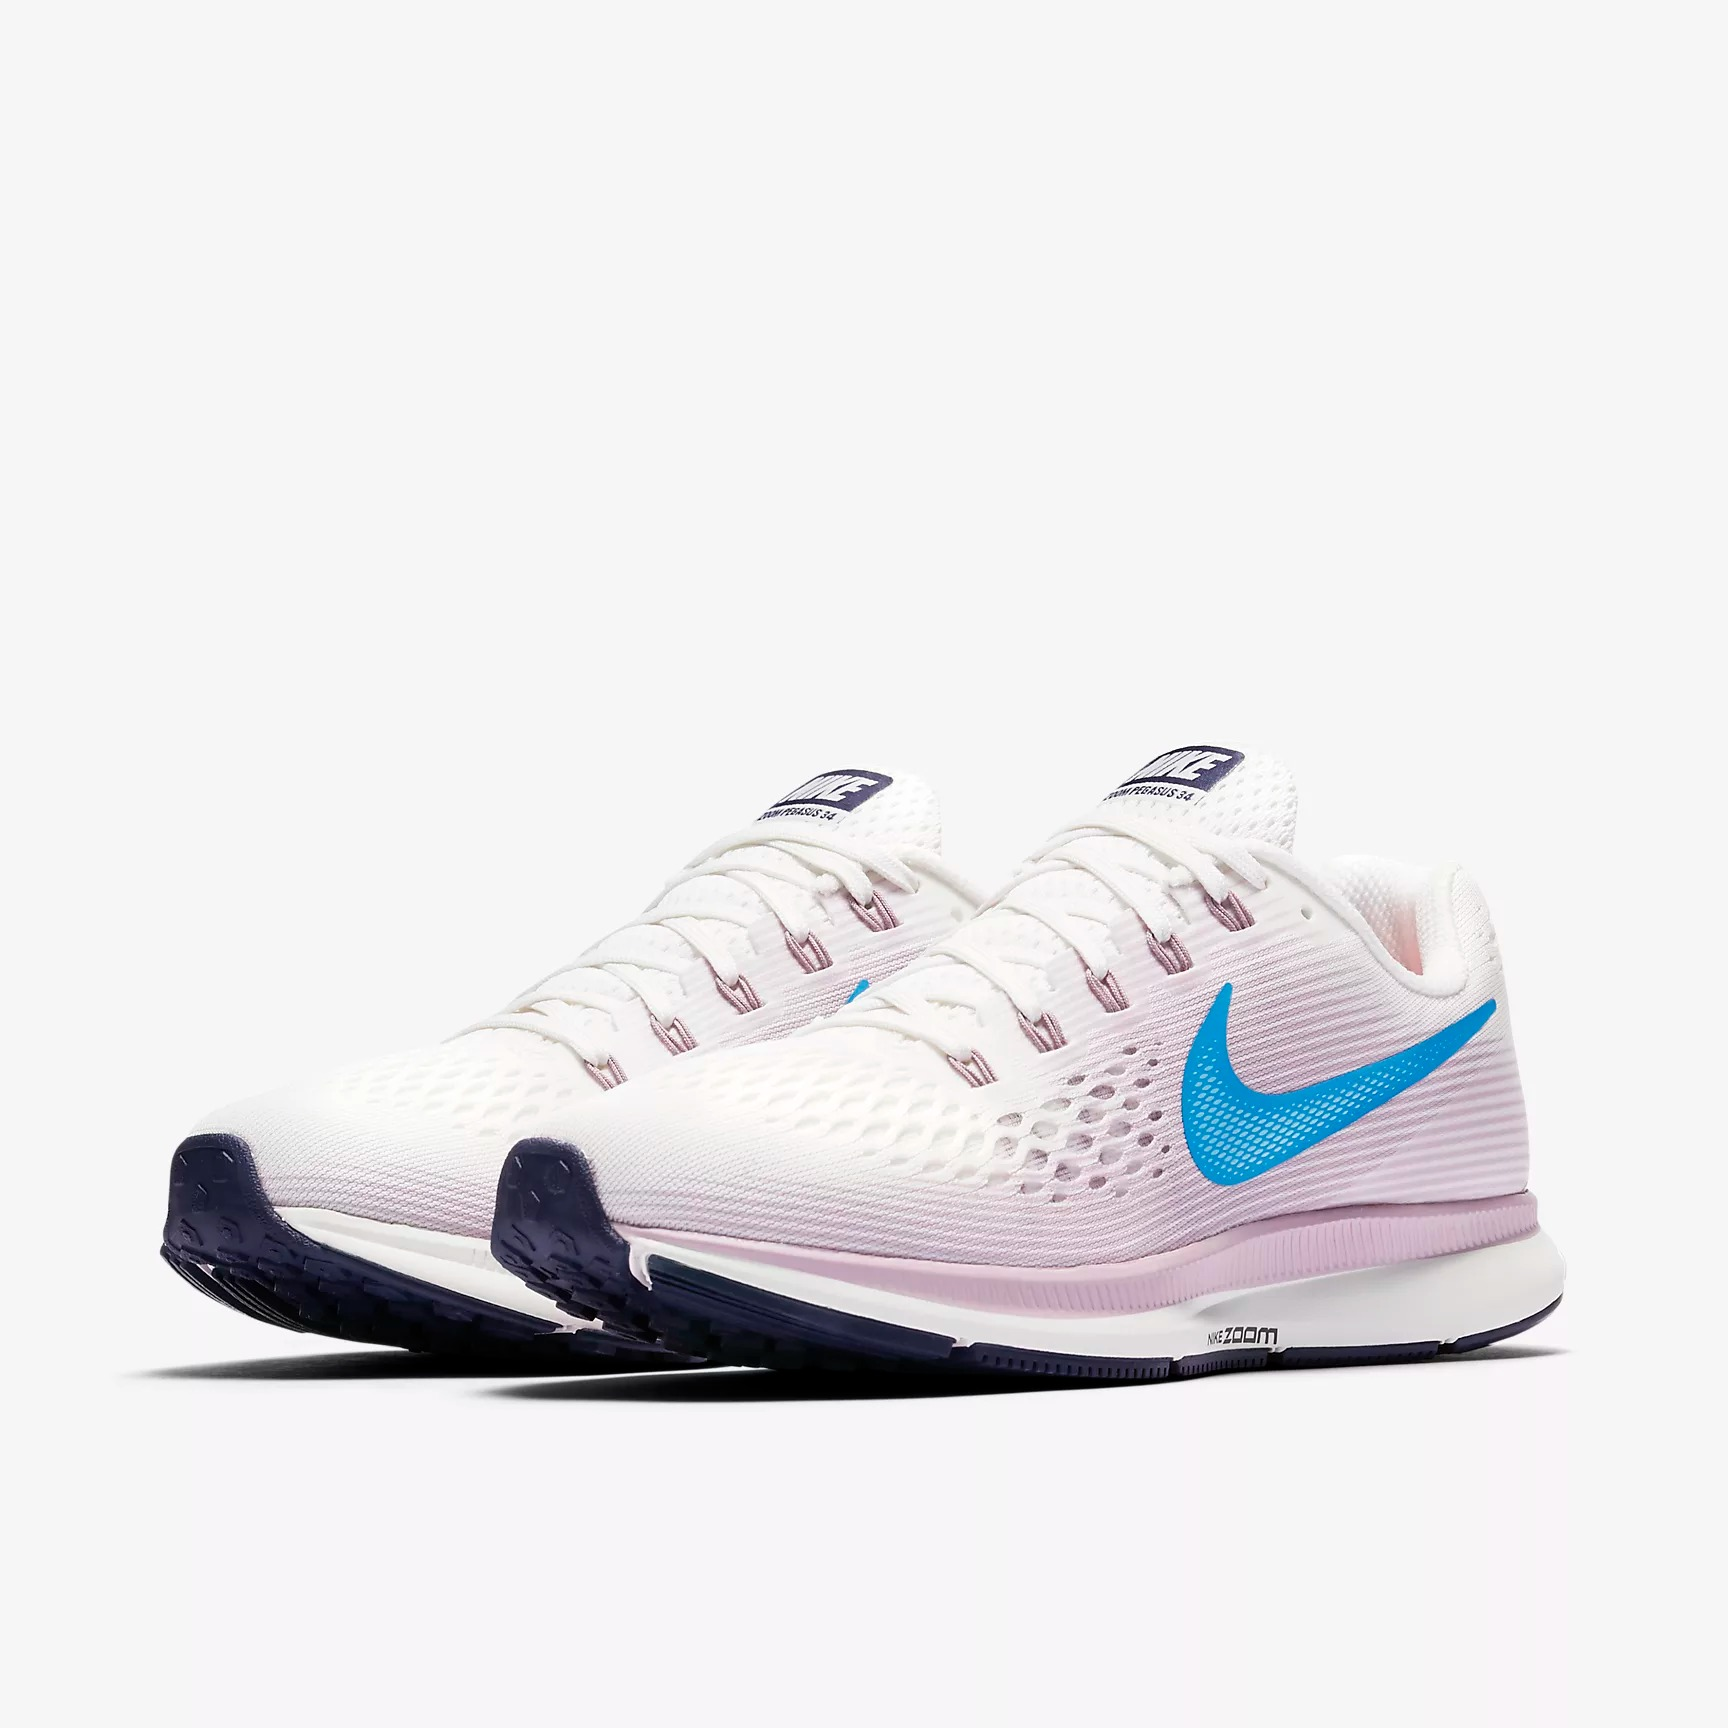 online retailer cc550 0636f Nike Wmns Air Zoom Pegasus 34 Running Shoes Last Size 42 ...